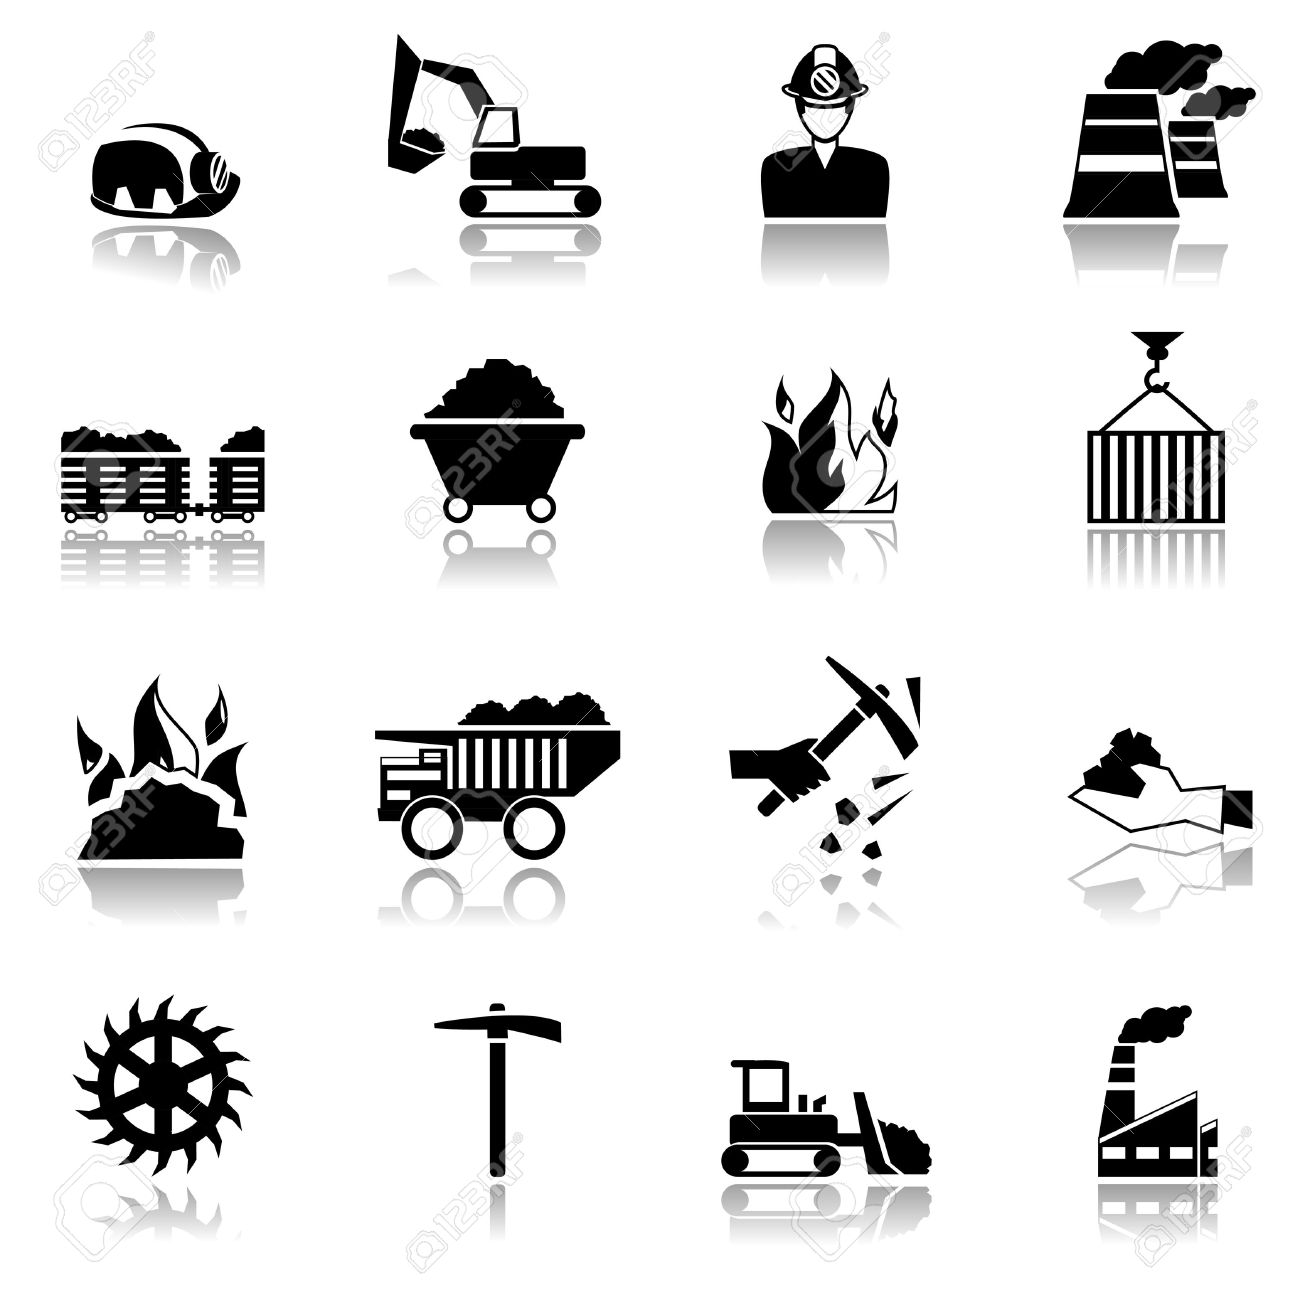 874 Conveyor Belt Icon Stock Vector Illustration And Royalty Free ...